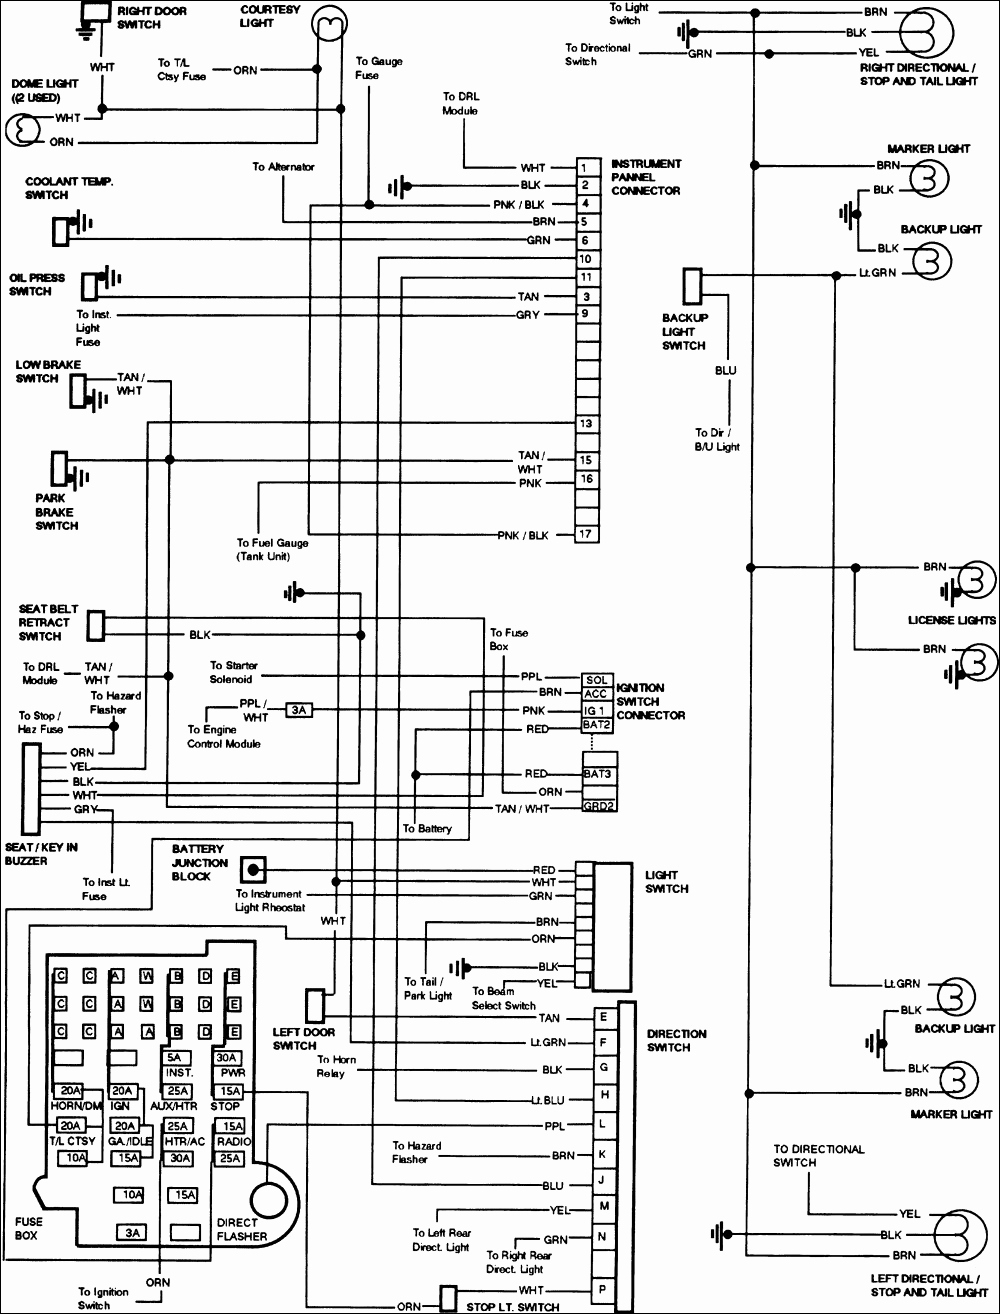 velvac mirror wiring diagram gallery